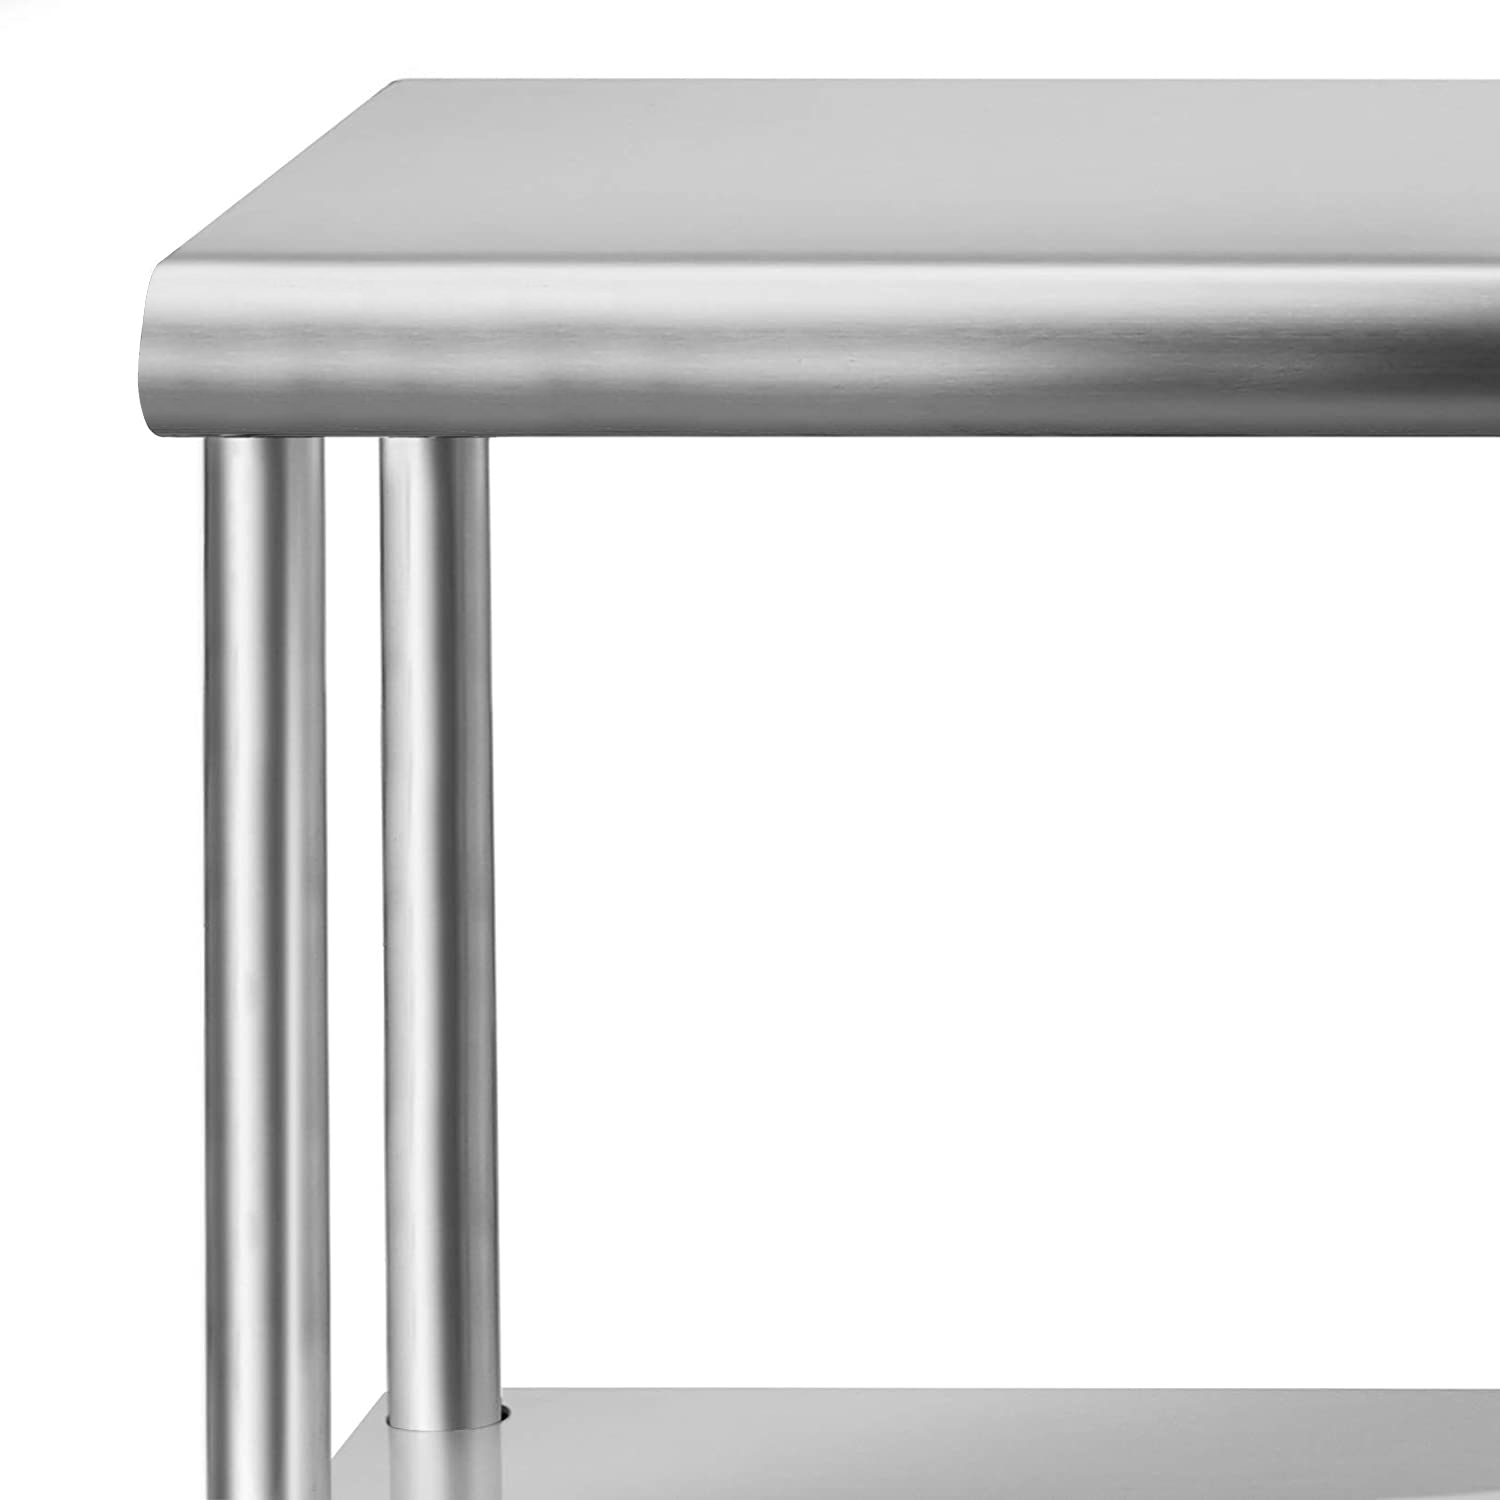 "Hakka 14"" x 60"" Stainless Steel Double Deck Overshelf"